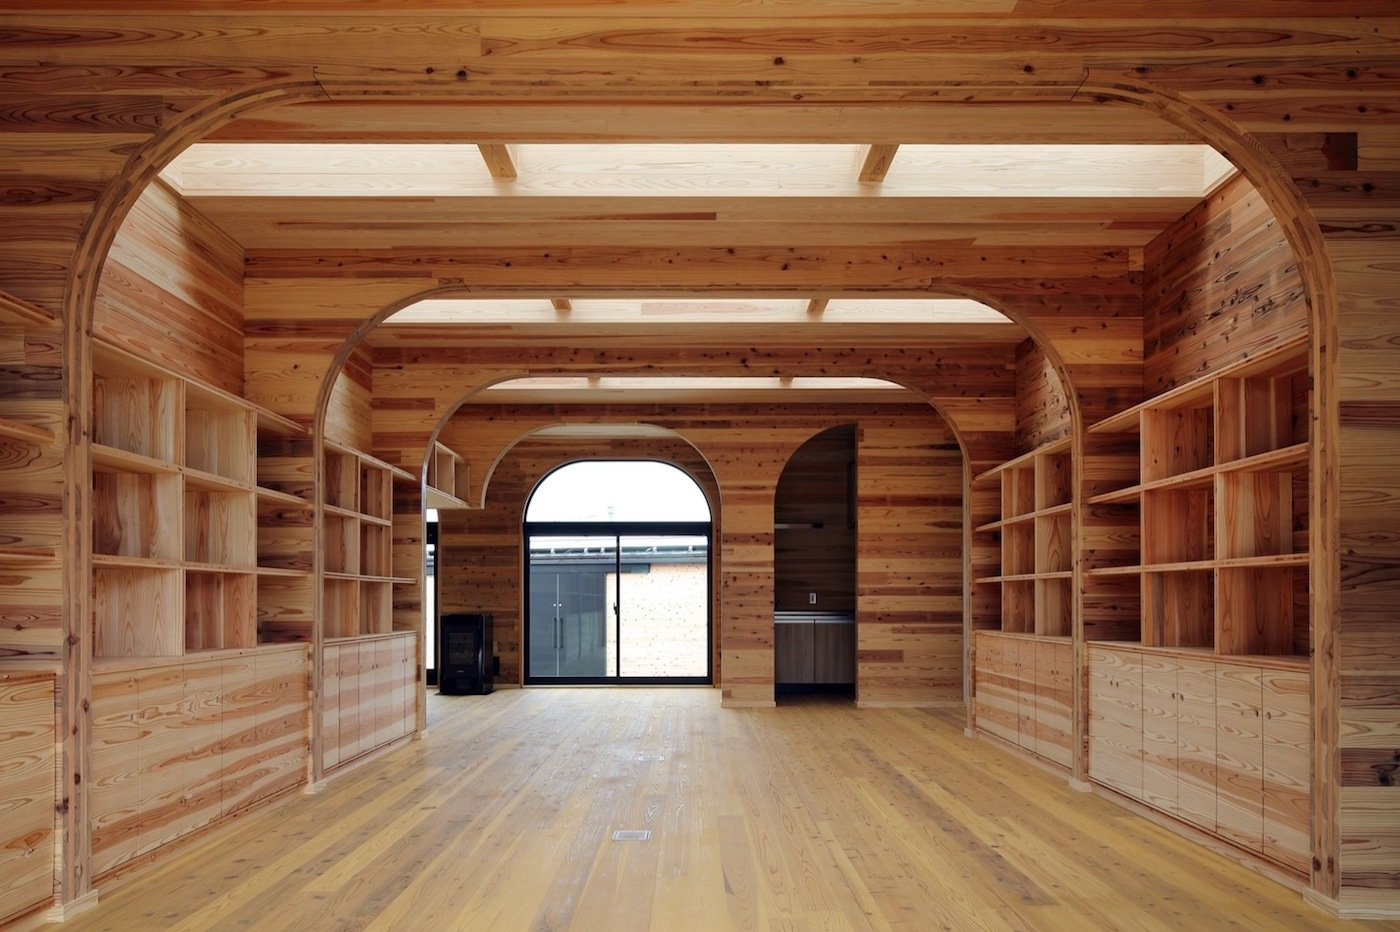 Timber shelving with skylights above